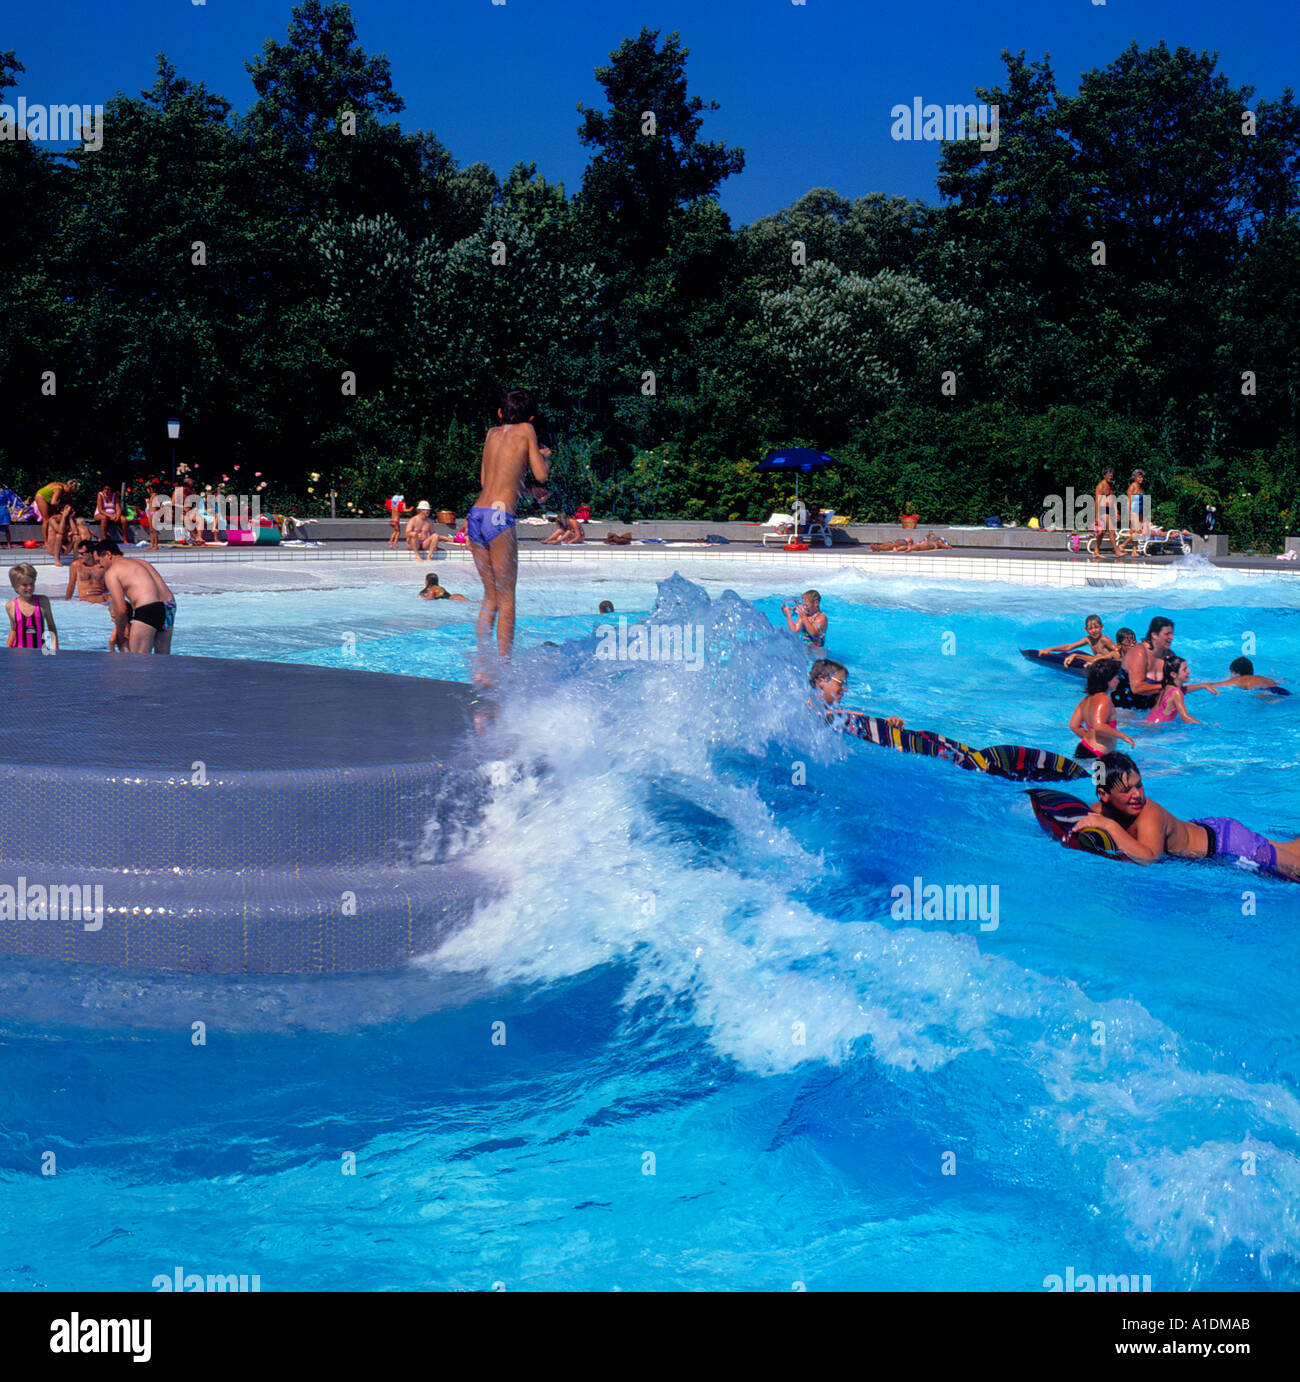 Public Swimming Pool Bavaria Germany People Swim Waves Fun Photo By Willy Matheisl